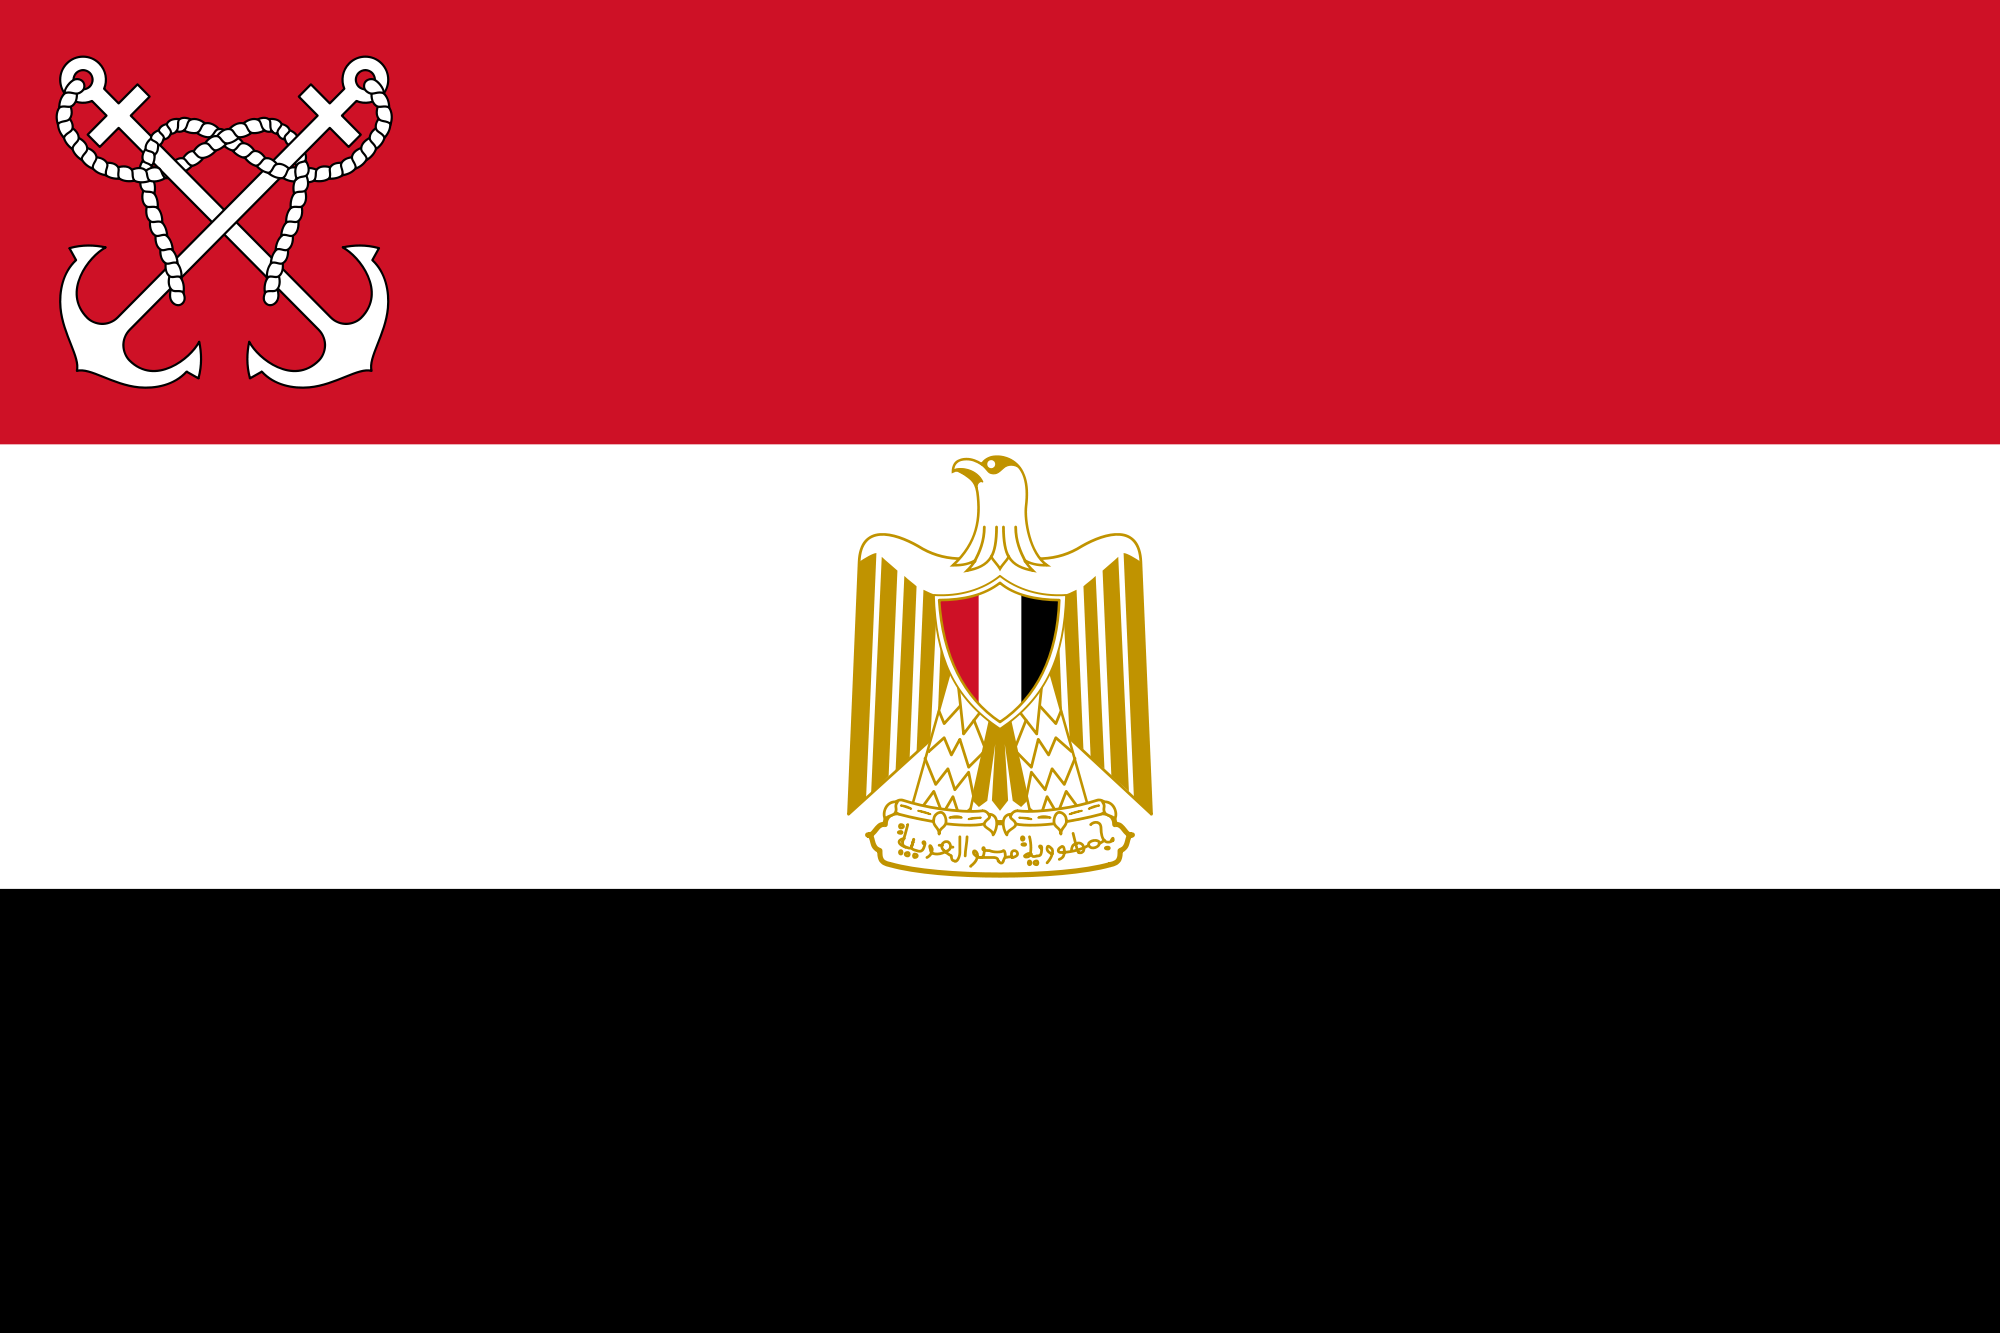 Egypt (Naval ensign)